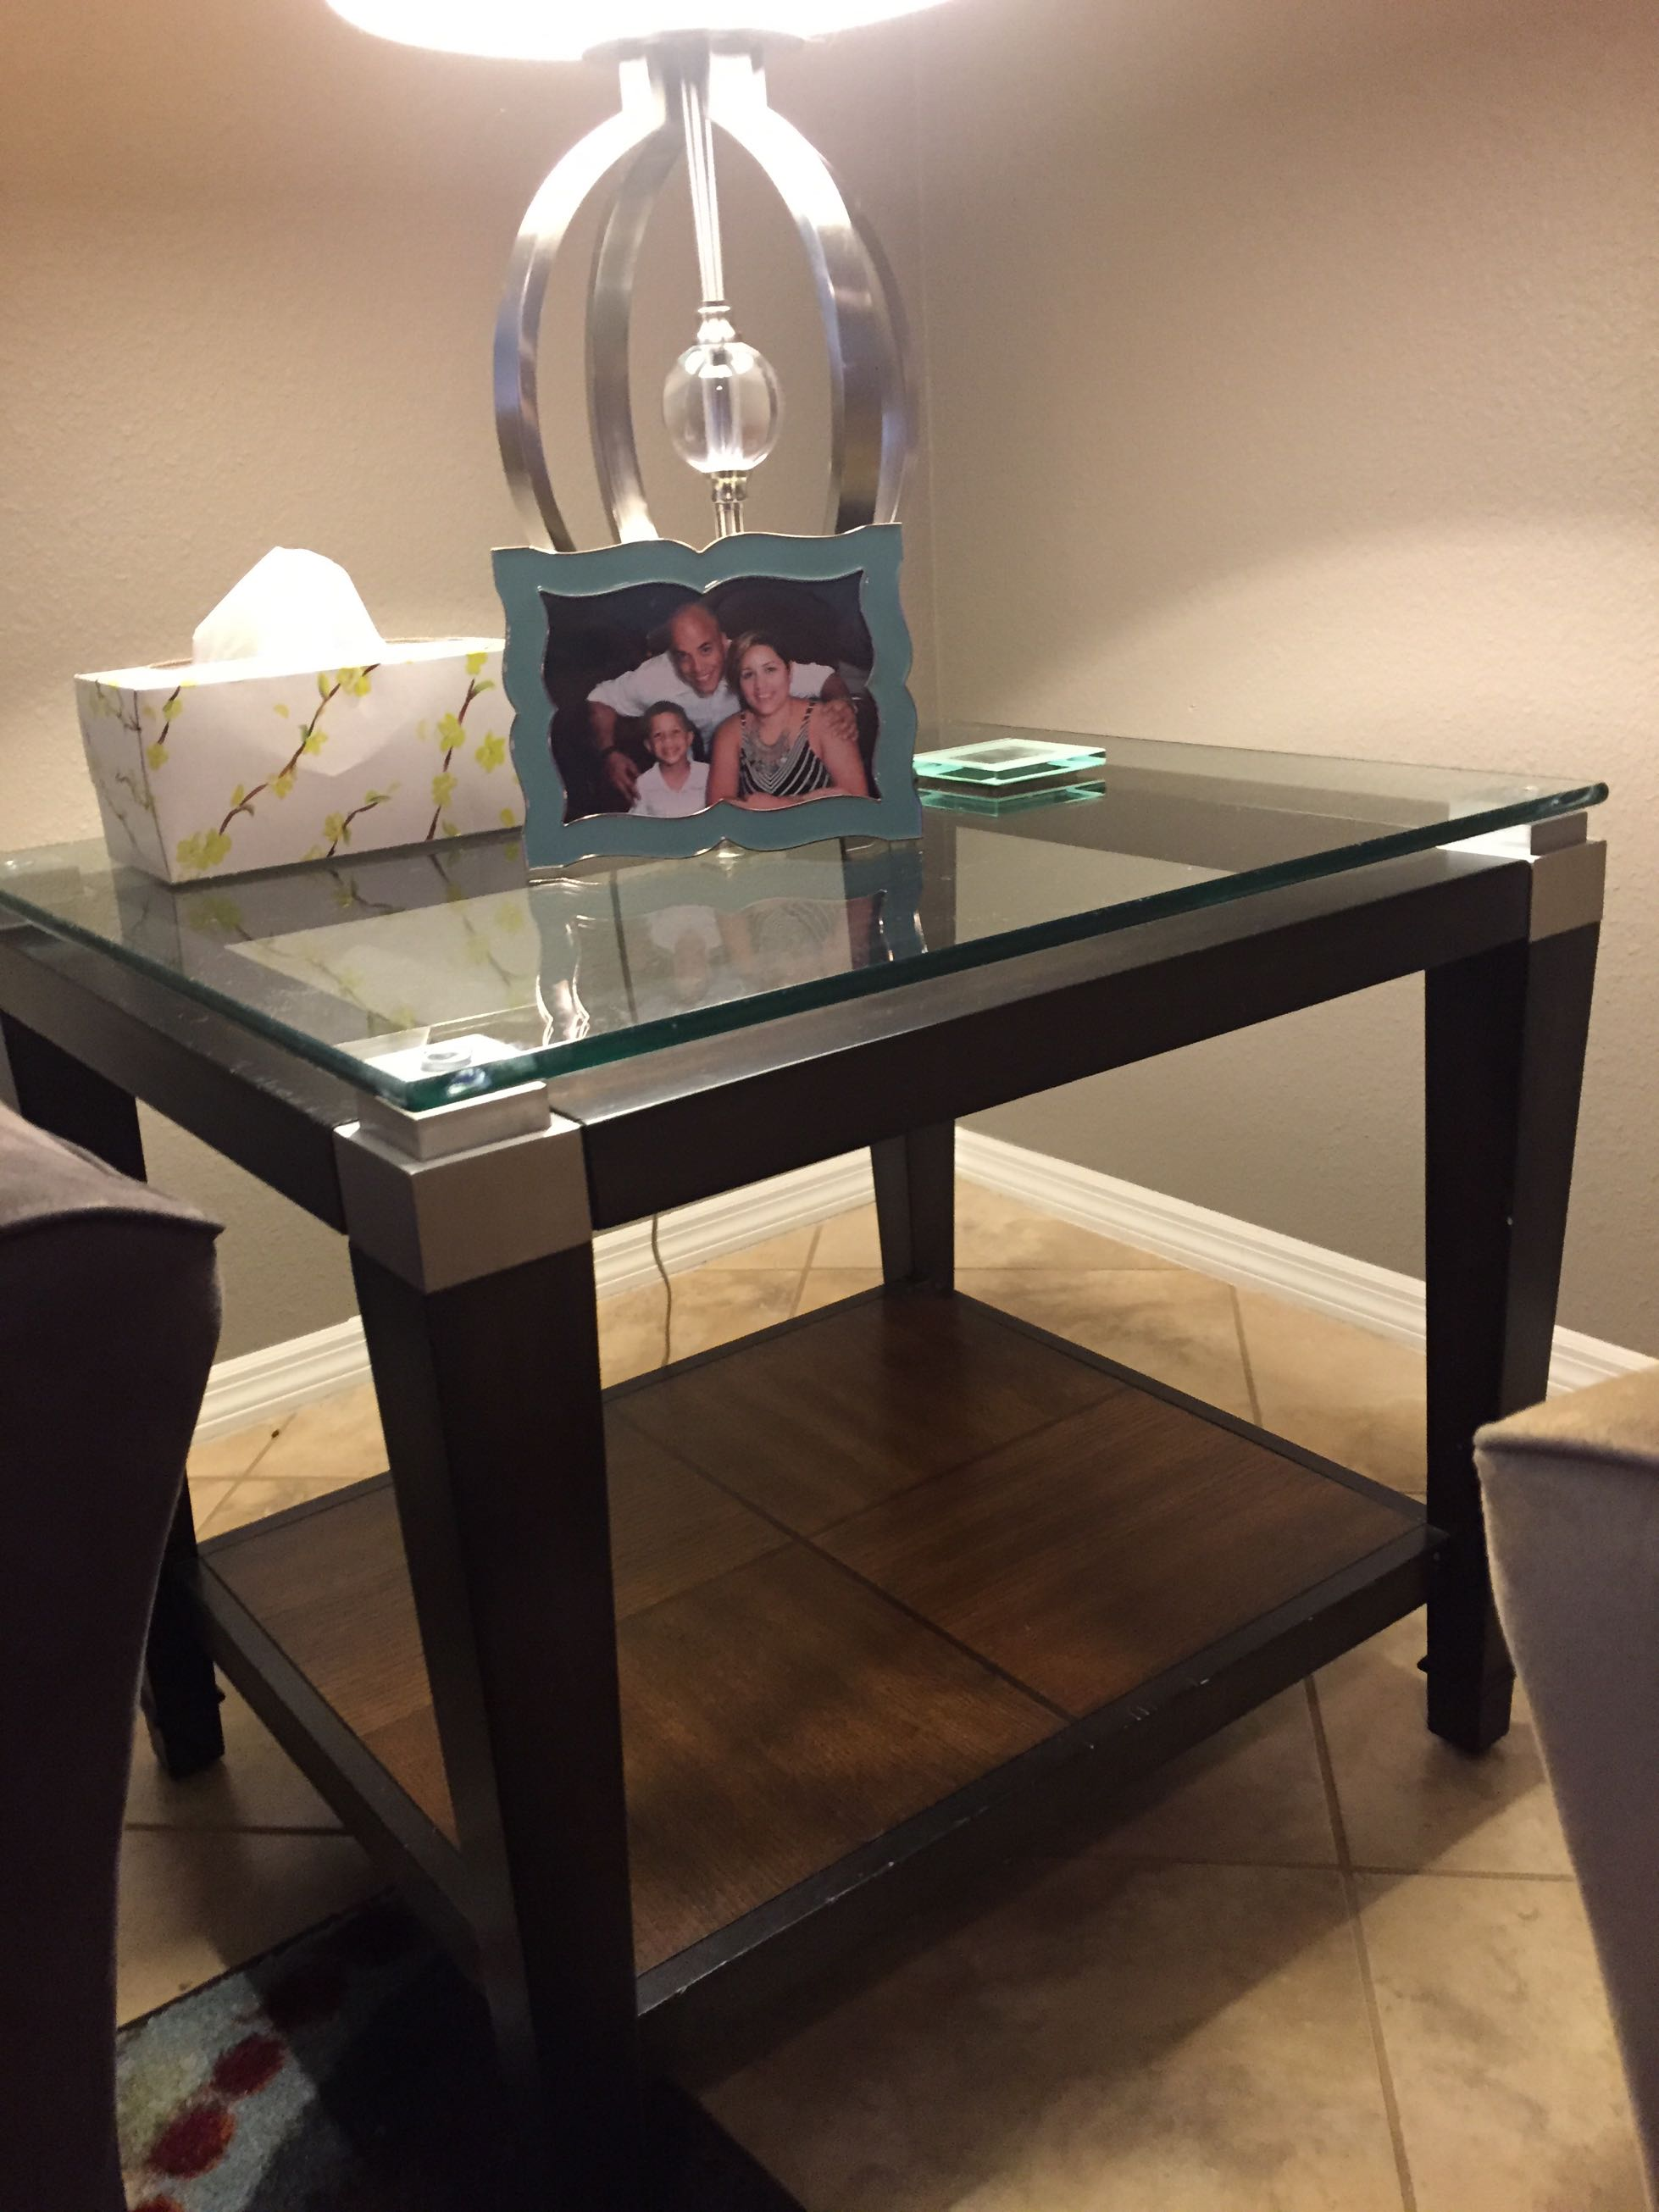 3 piece living room table set coffee table and 2 side tables